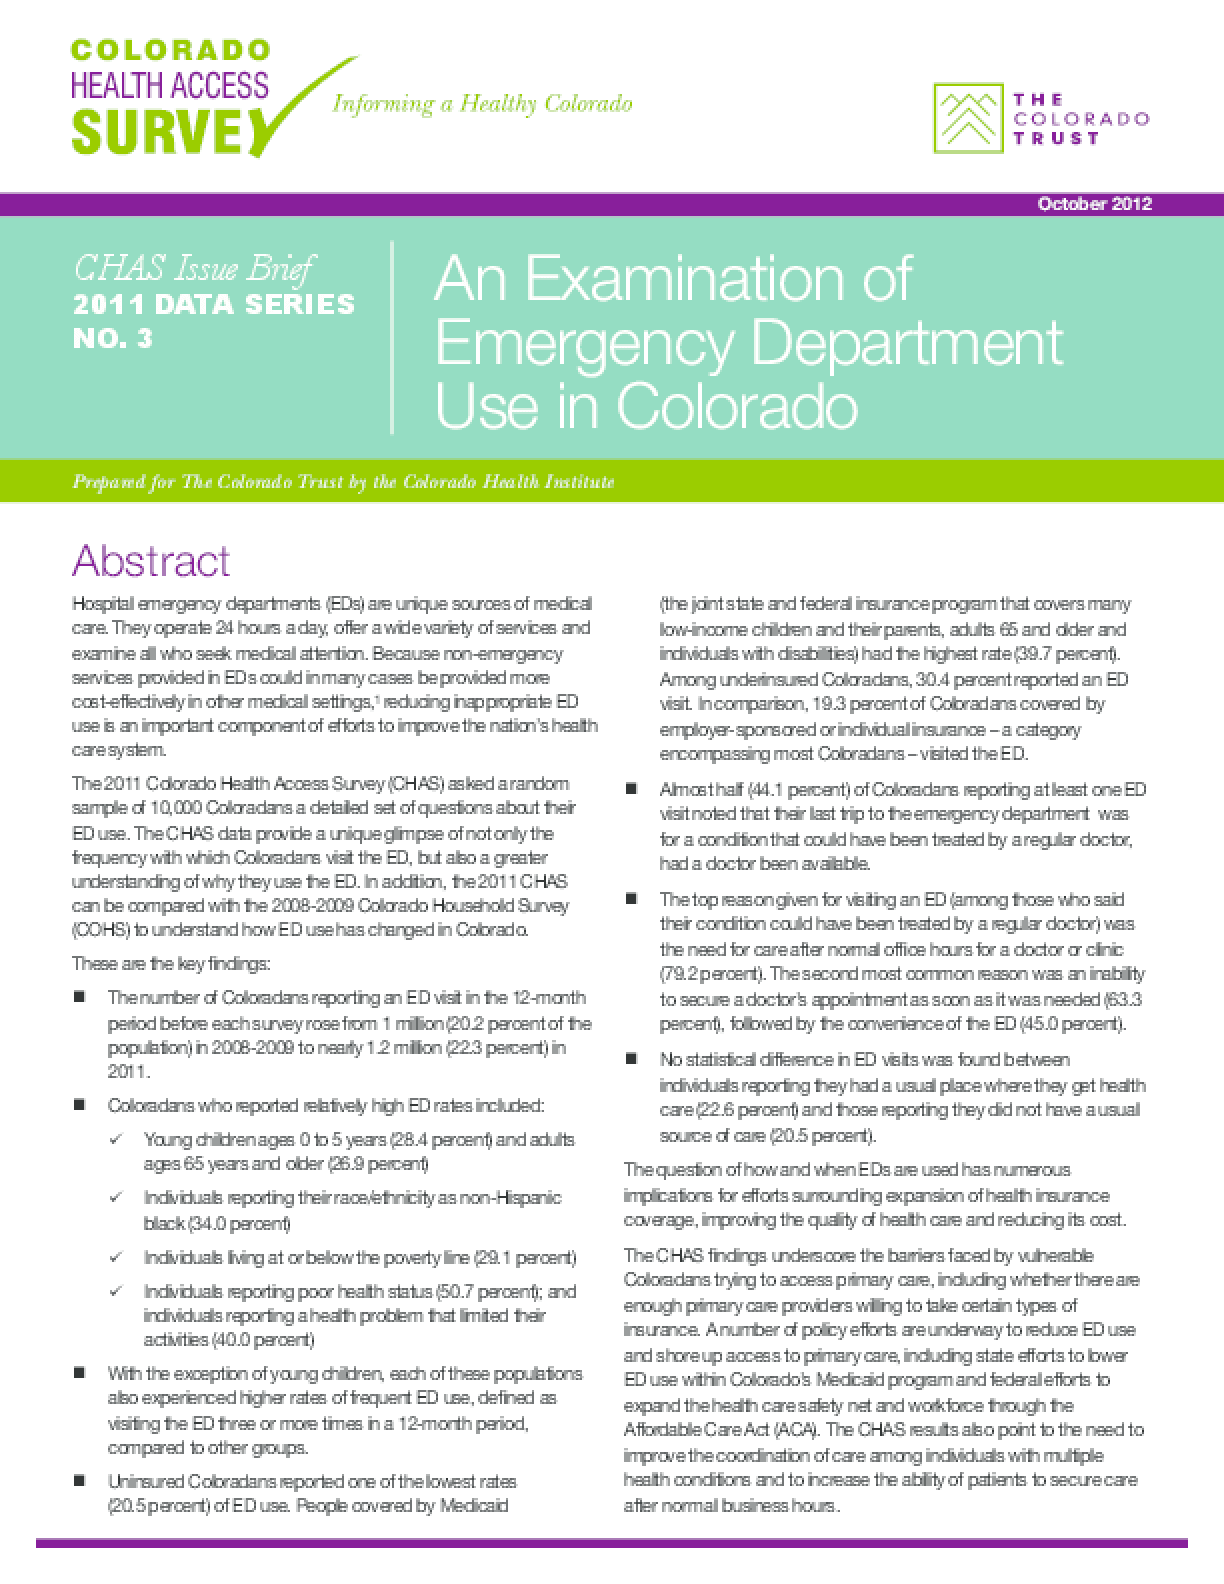 CHAS Issue Brief: An Examination of Emergency Department Use in Colorado